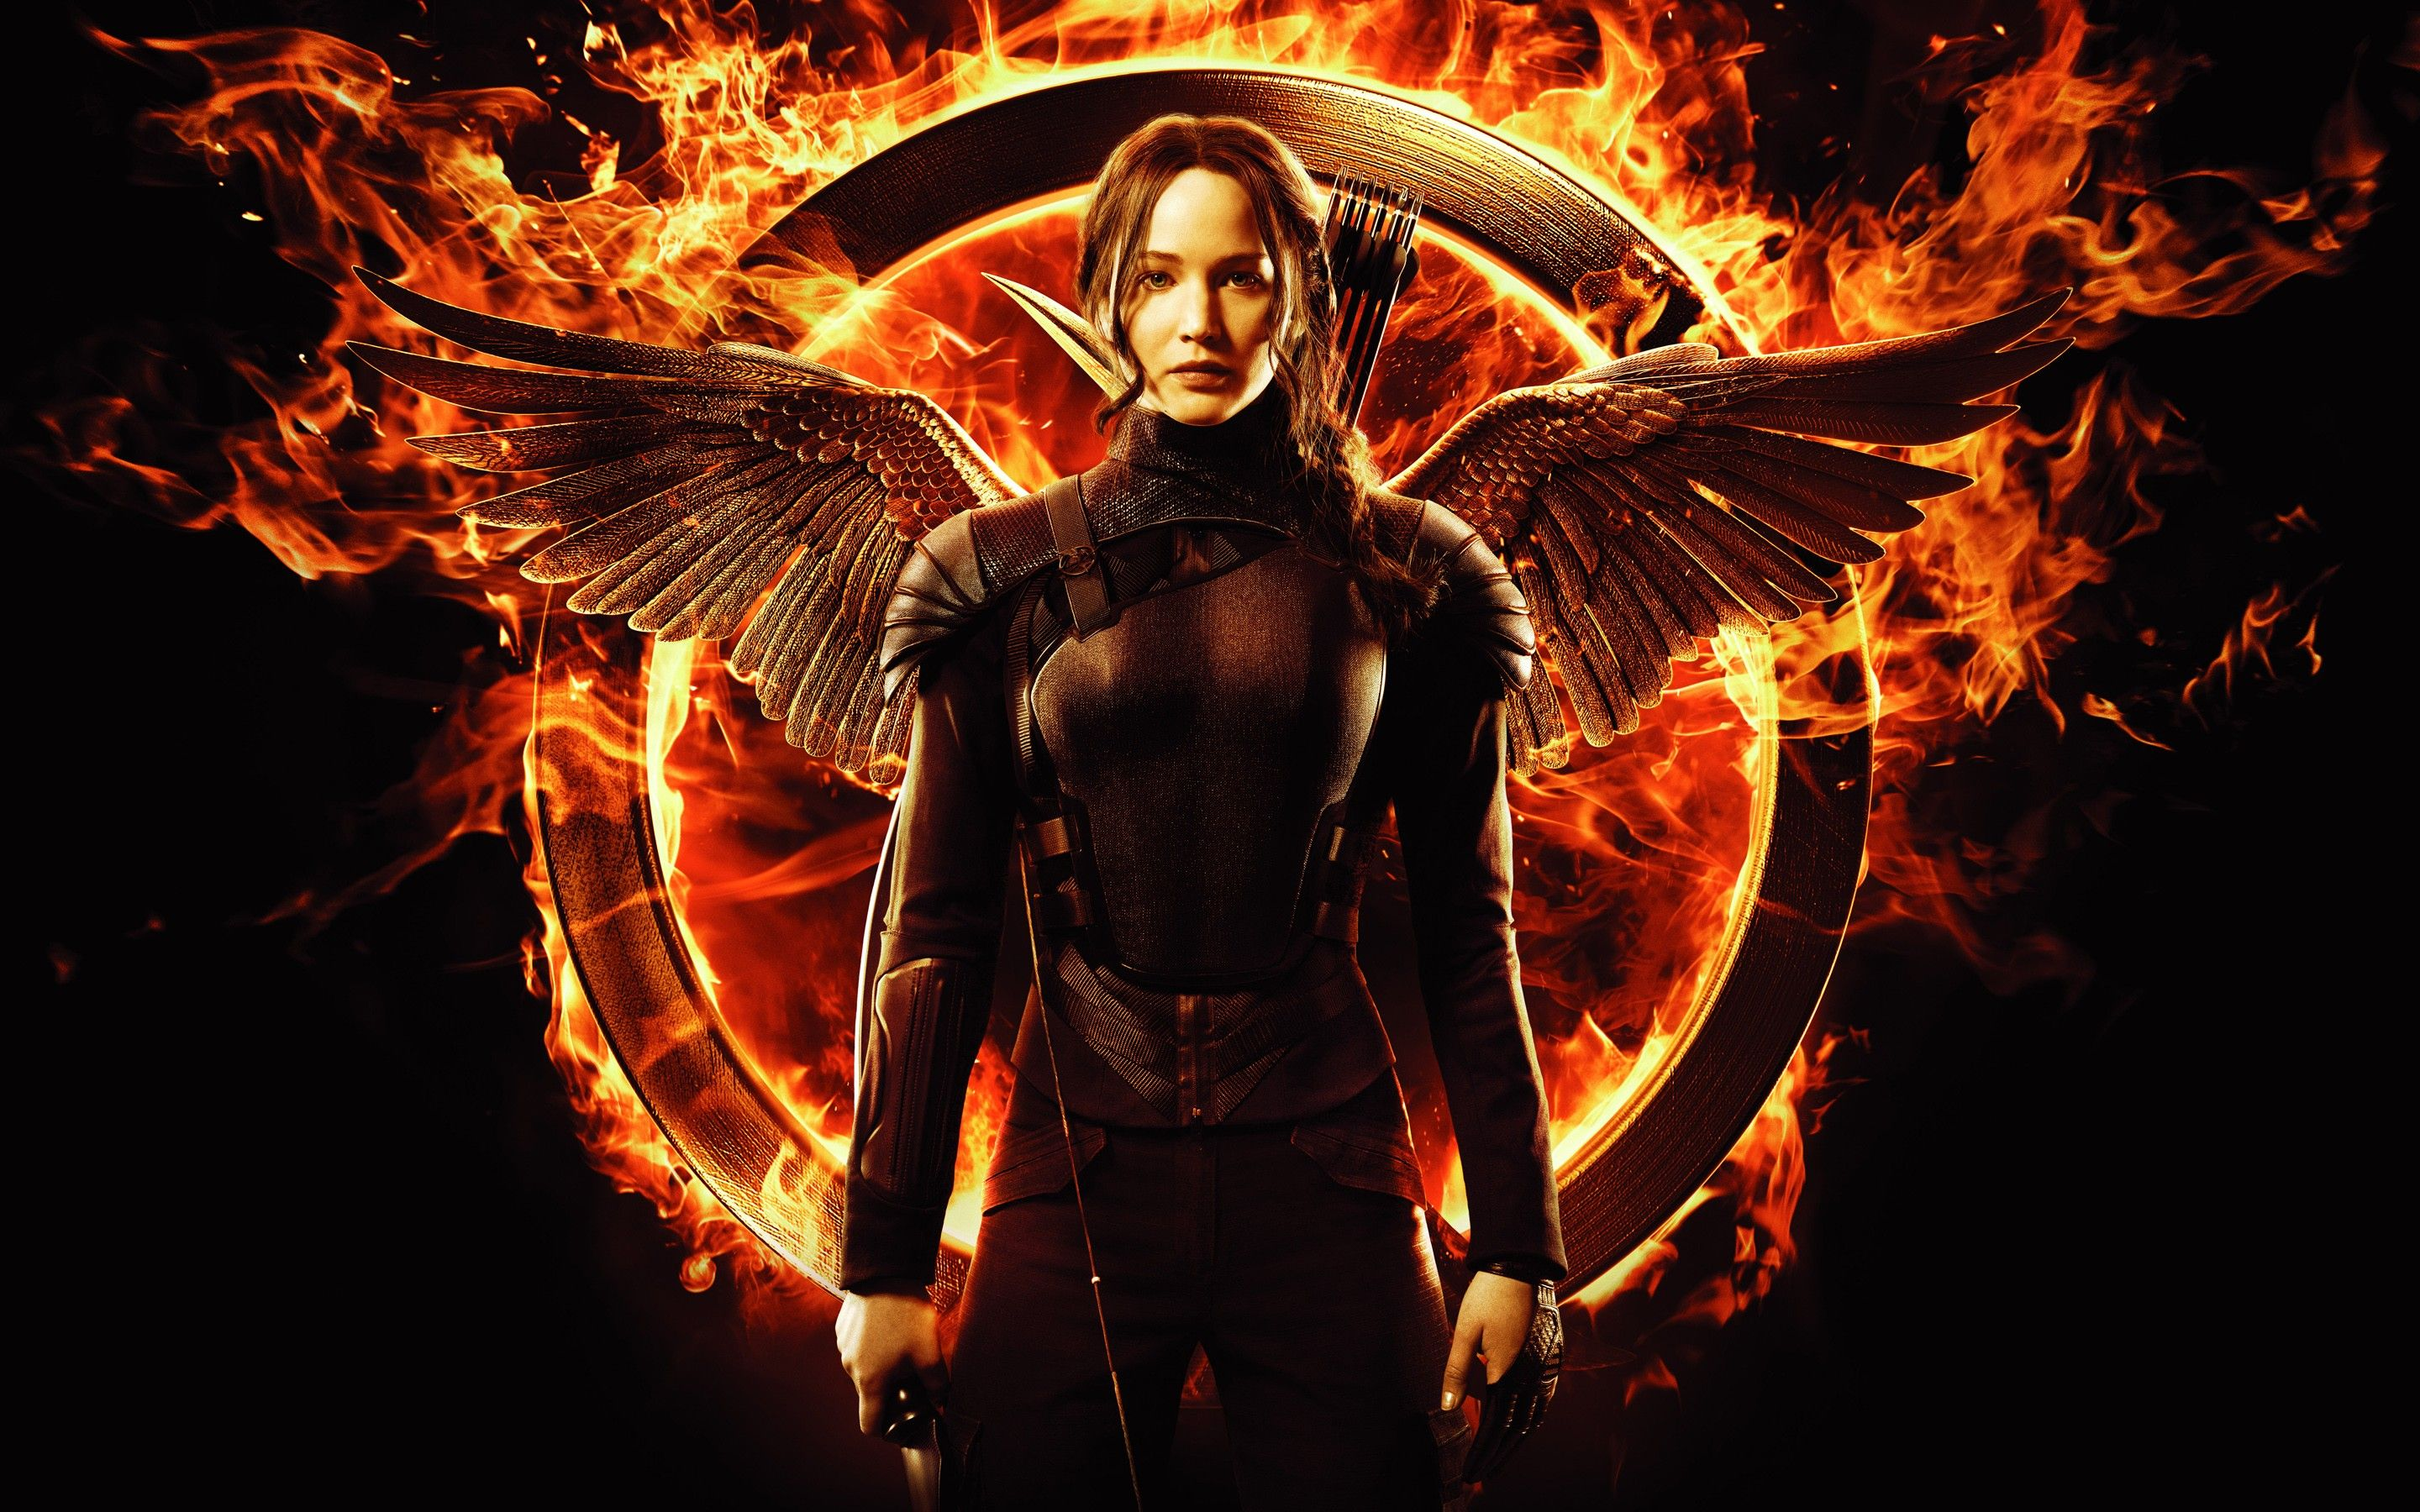 Jennifer Lawrence In Hunger Games Wallpaper | Movies HD ...